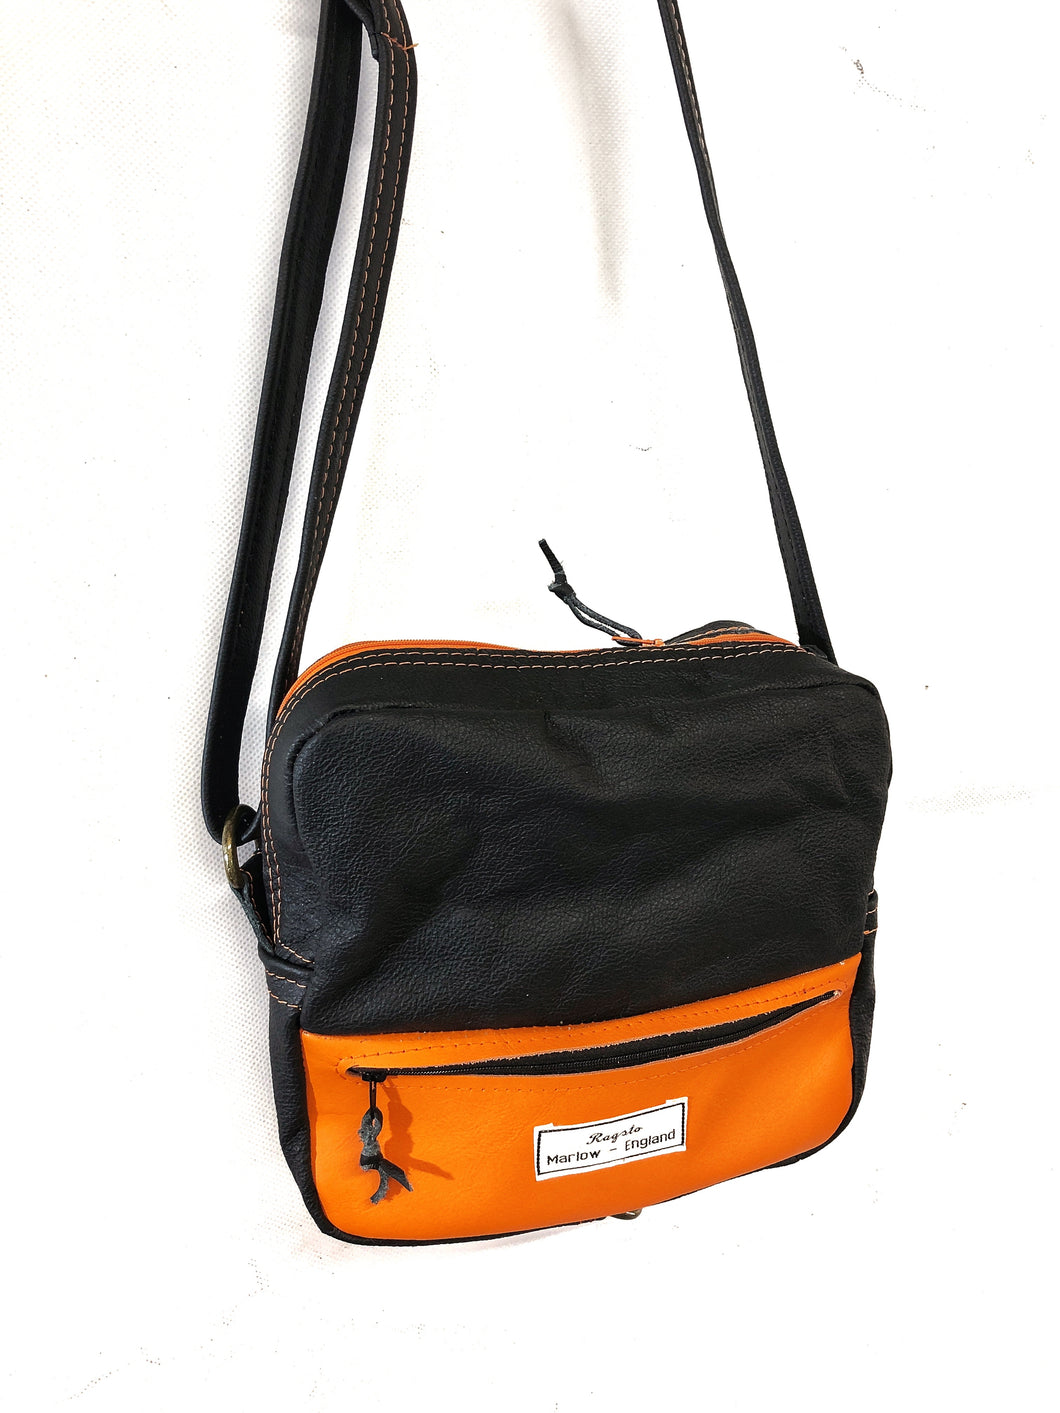 Special Edition Black & Orange leather Shoulder bag